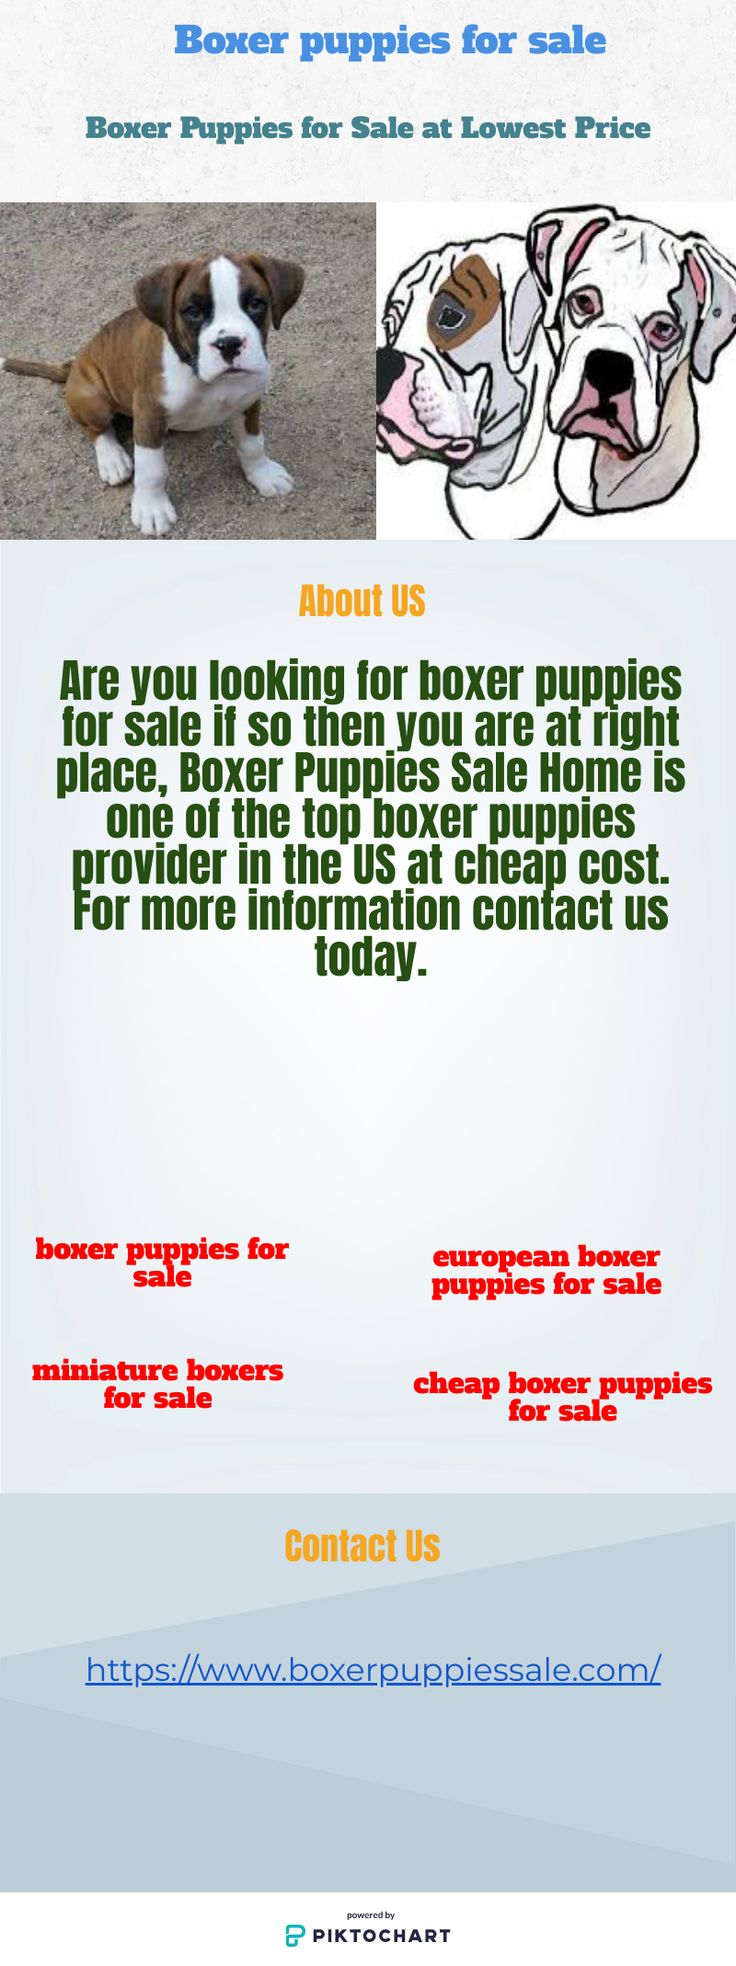 Find european boxer puppies for sale at cheap cost boxer